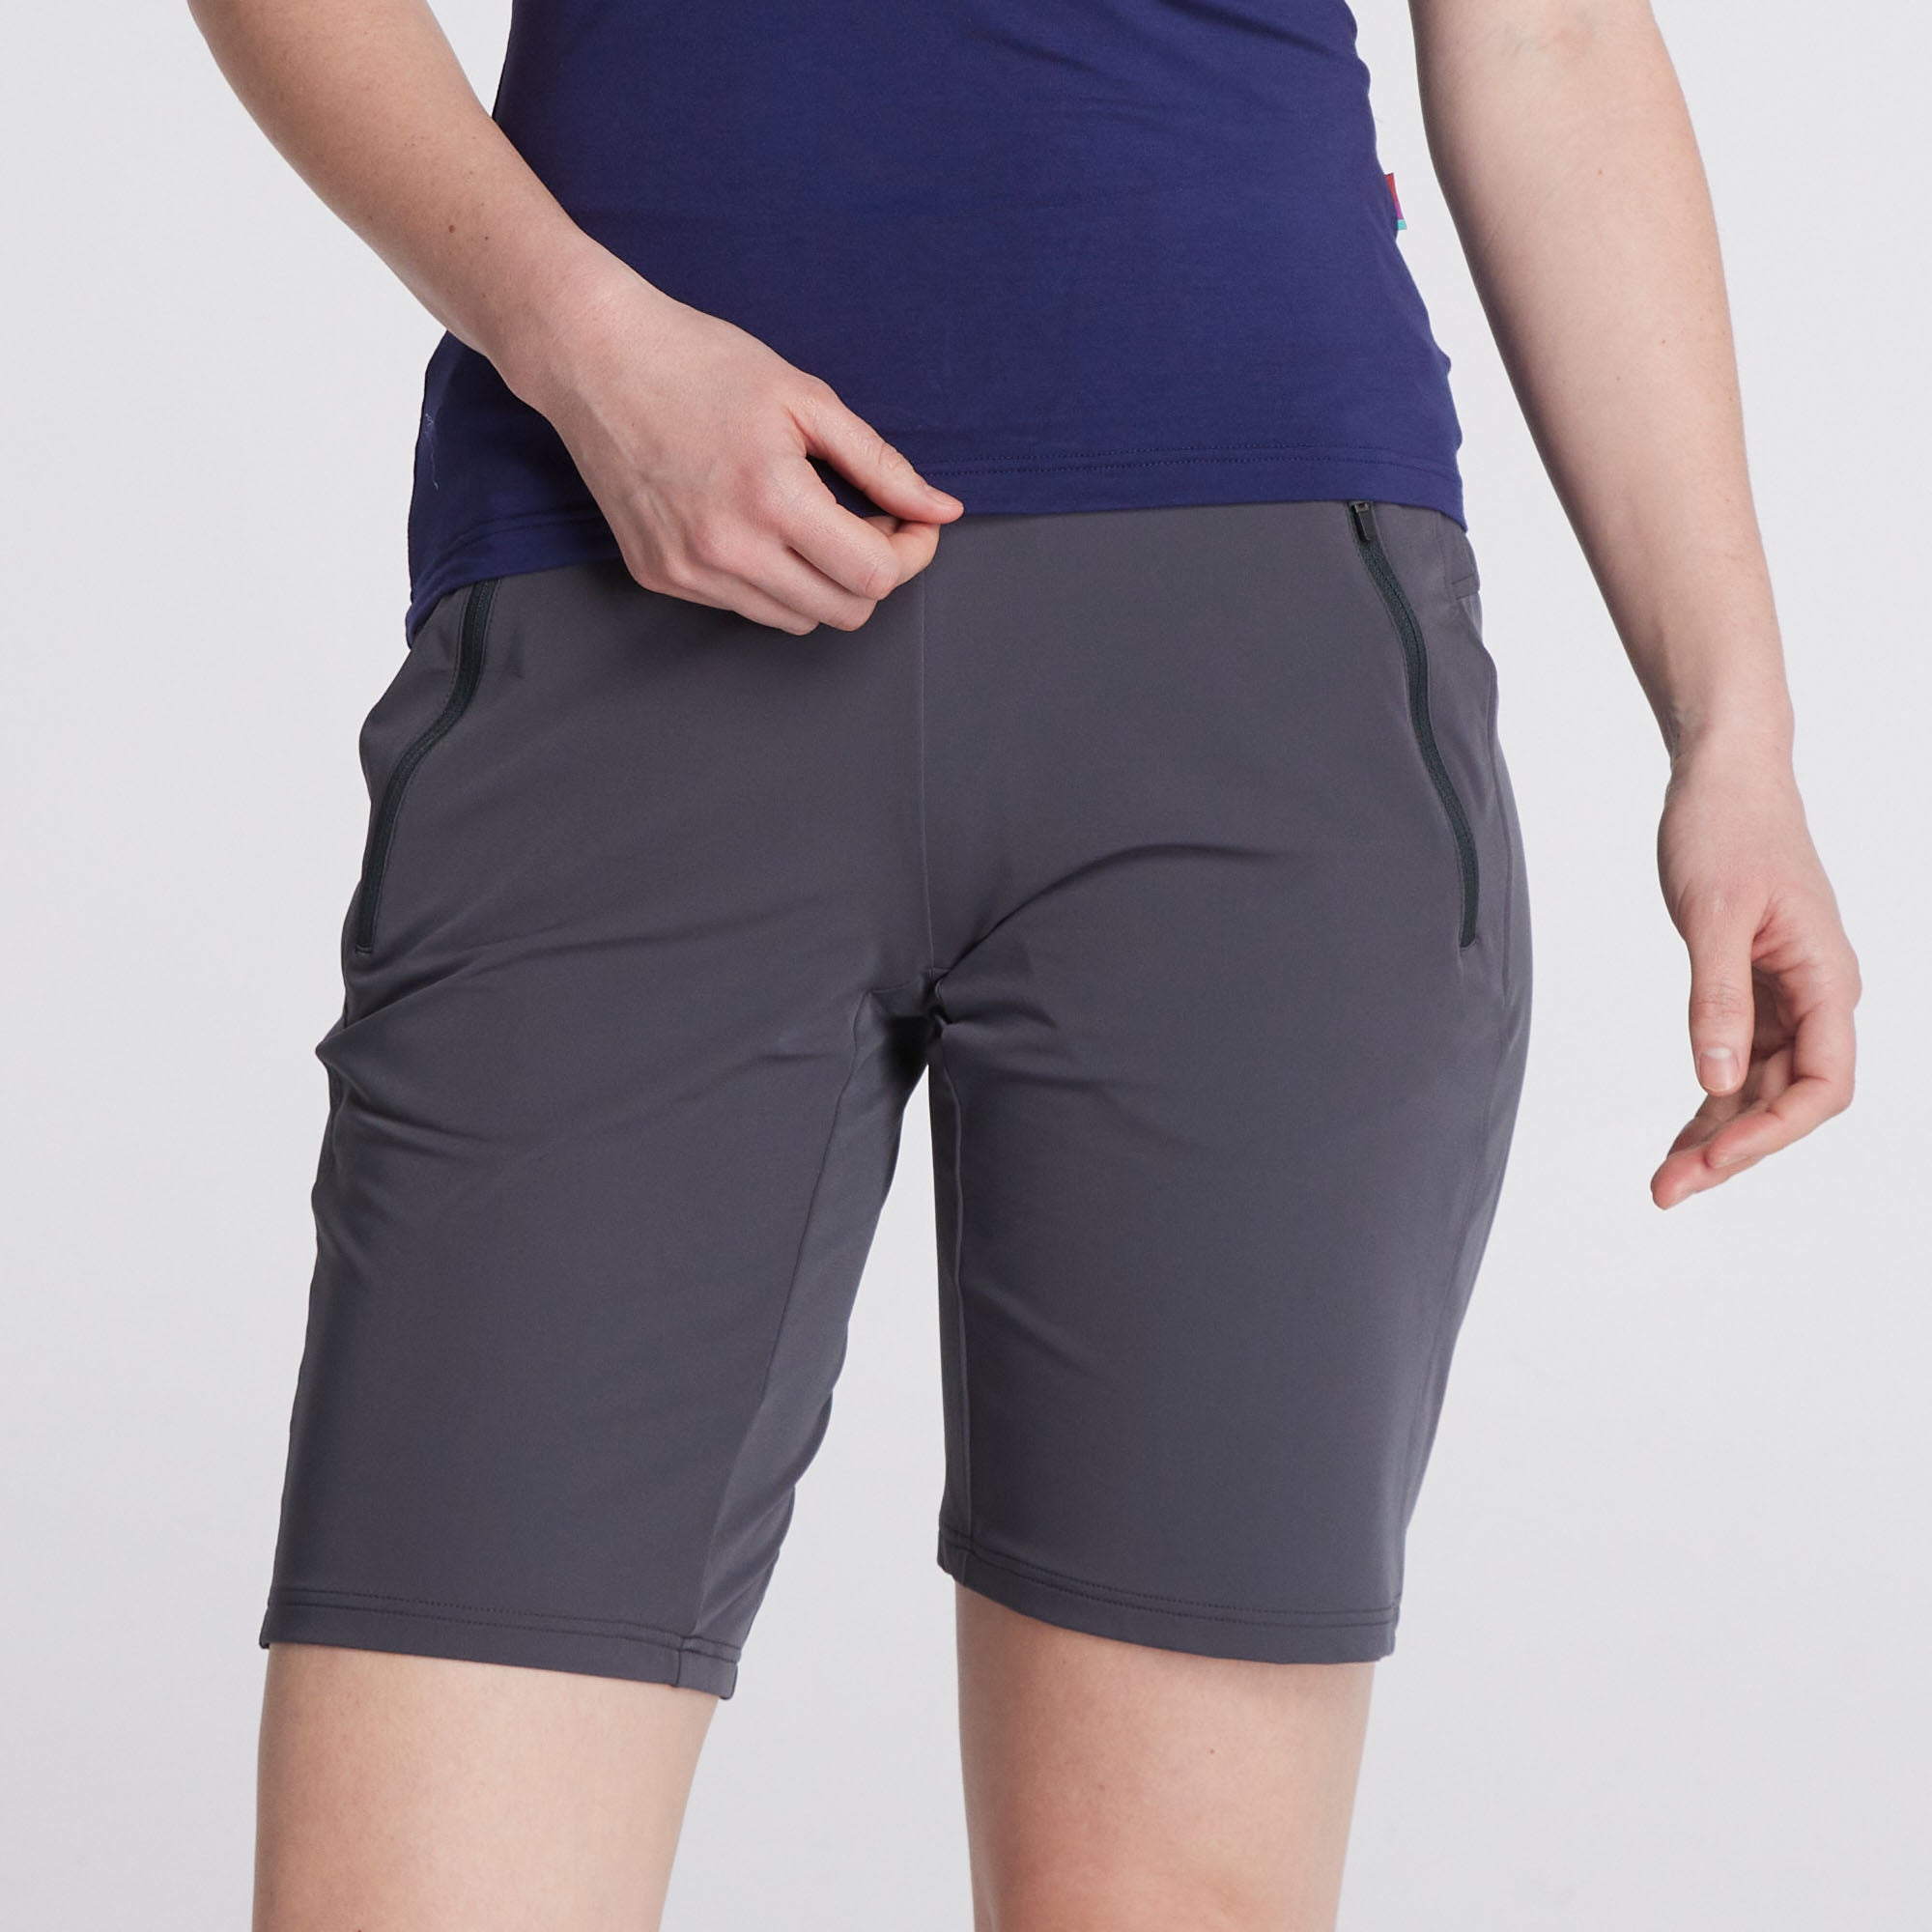 Women's RECON Stealth Short